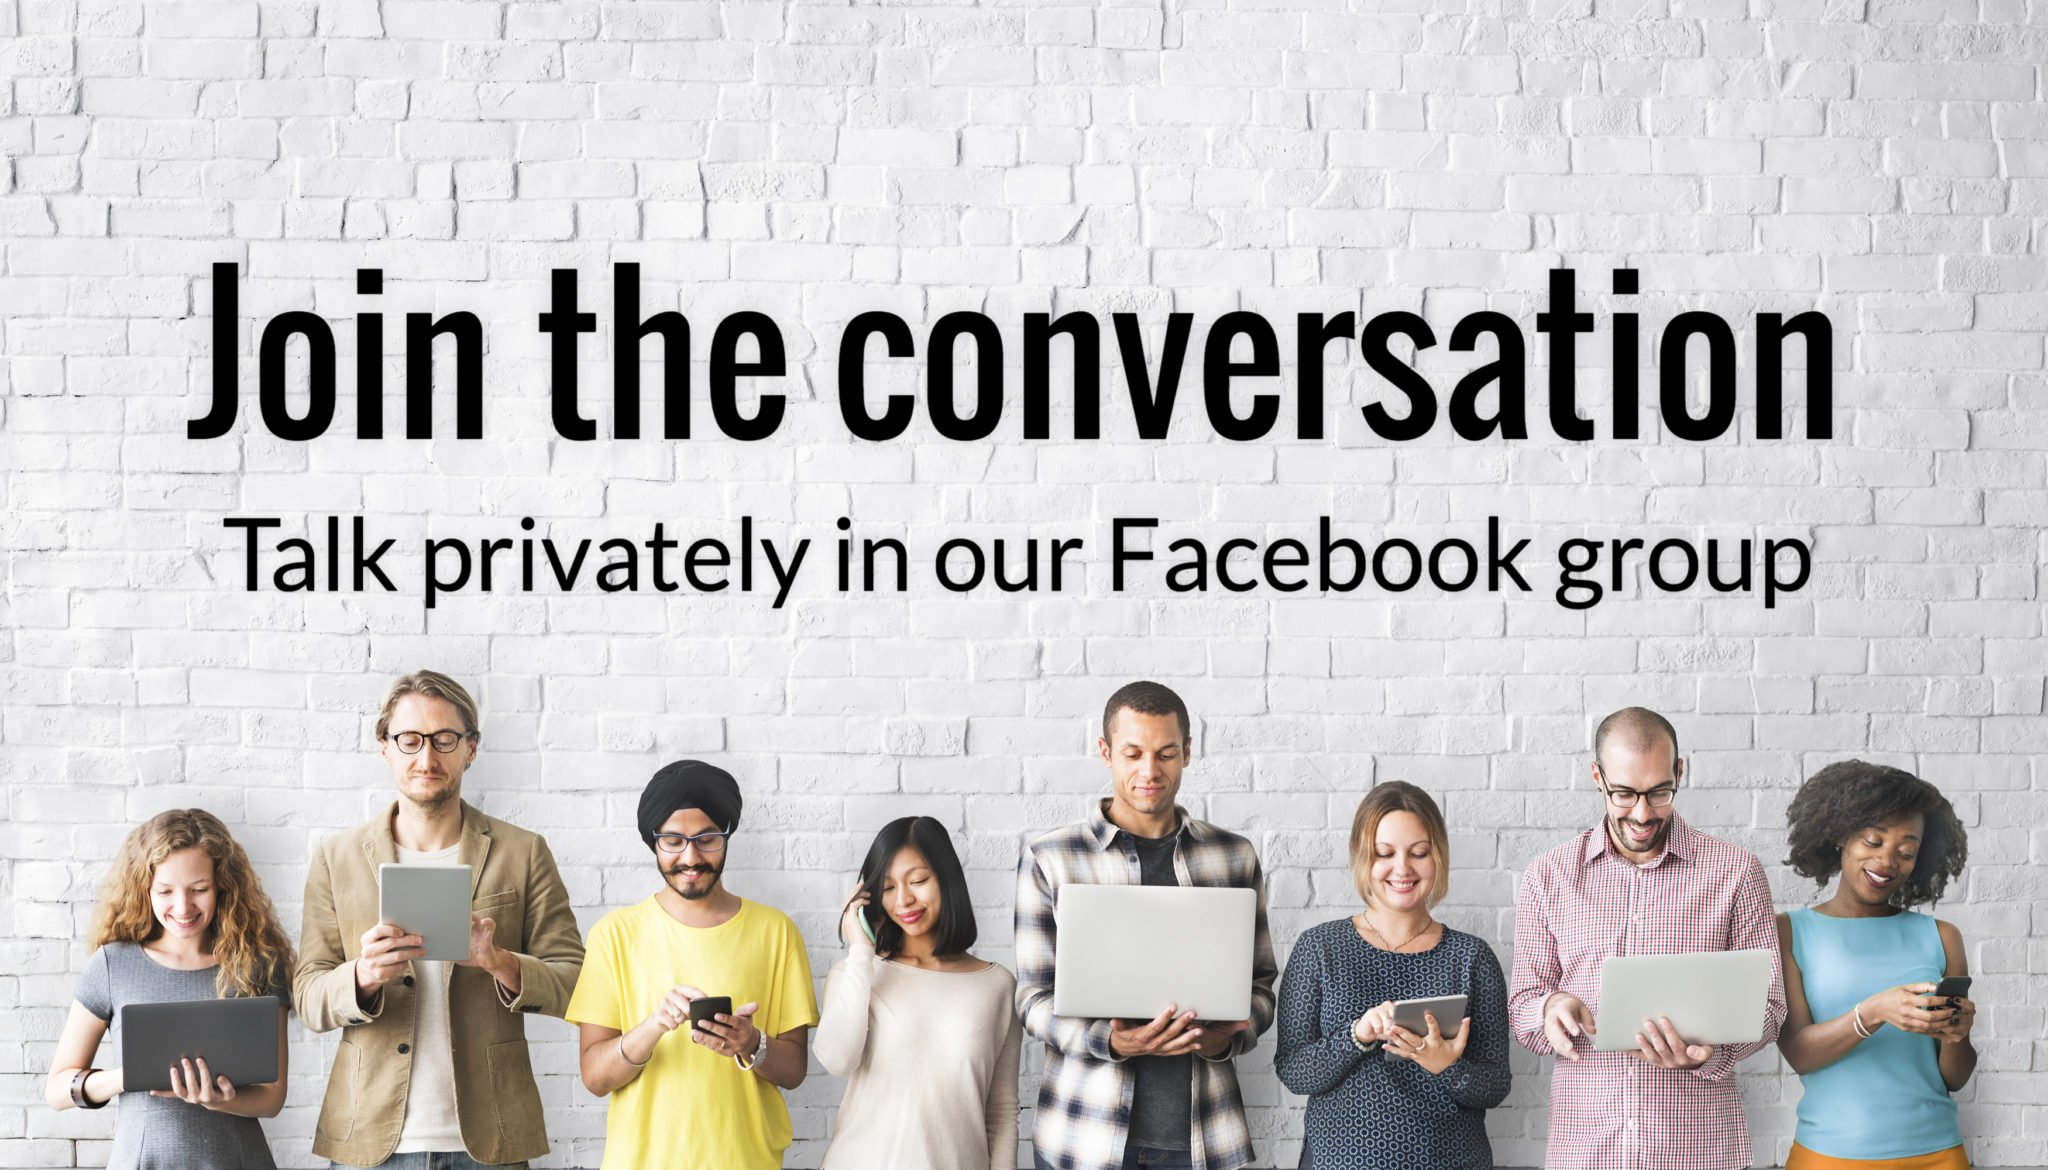 join the conversation in our private caregiving facebook group